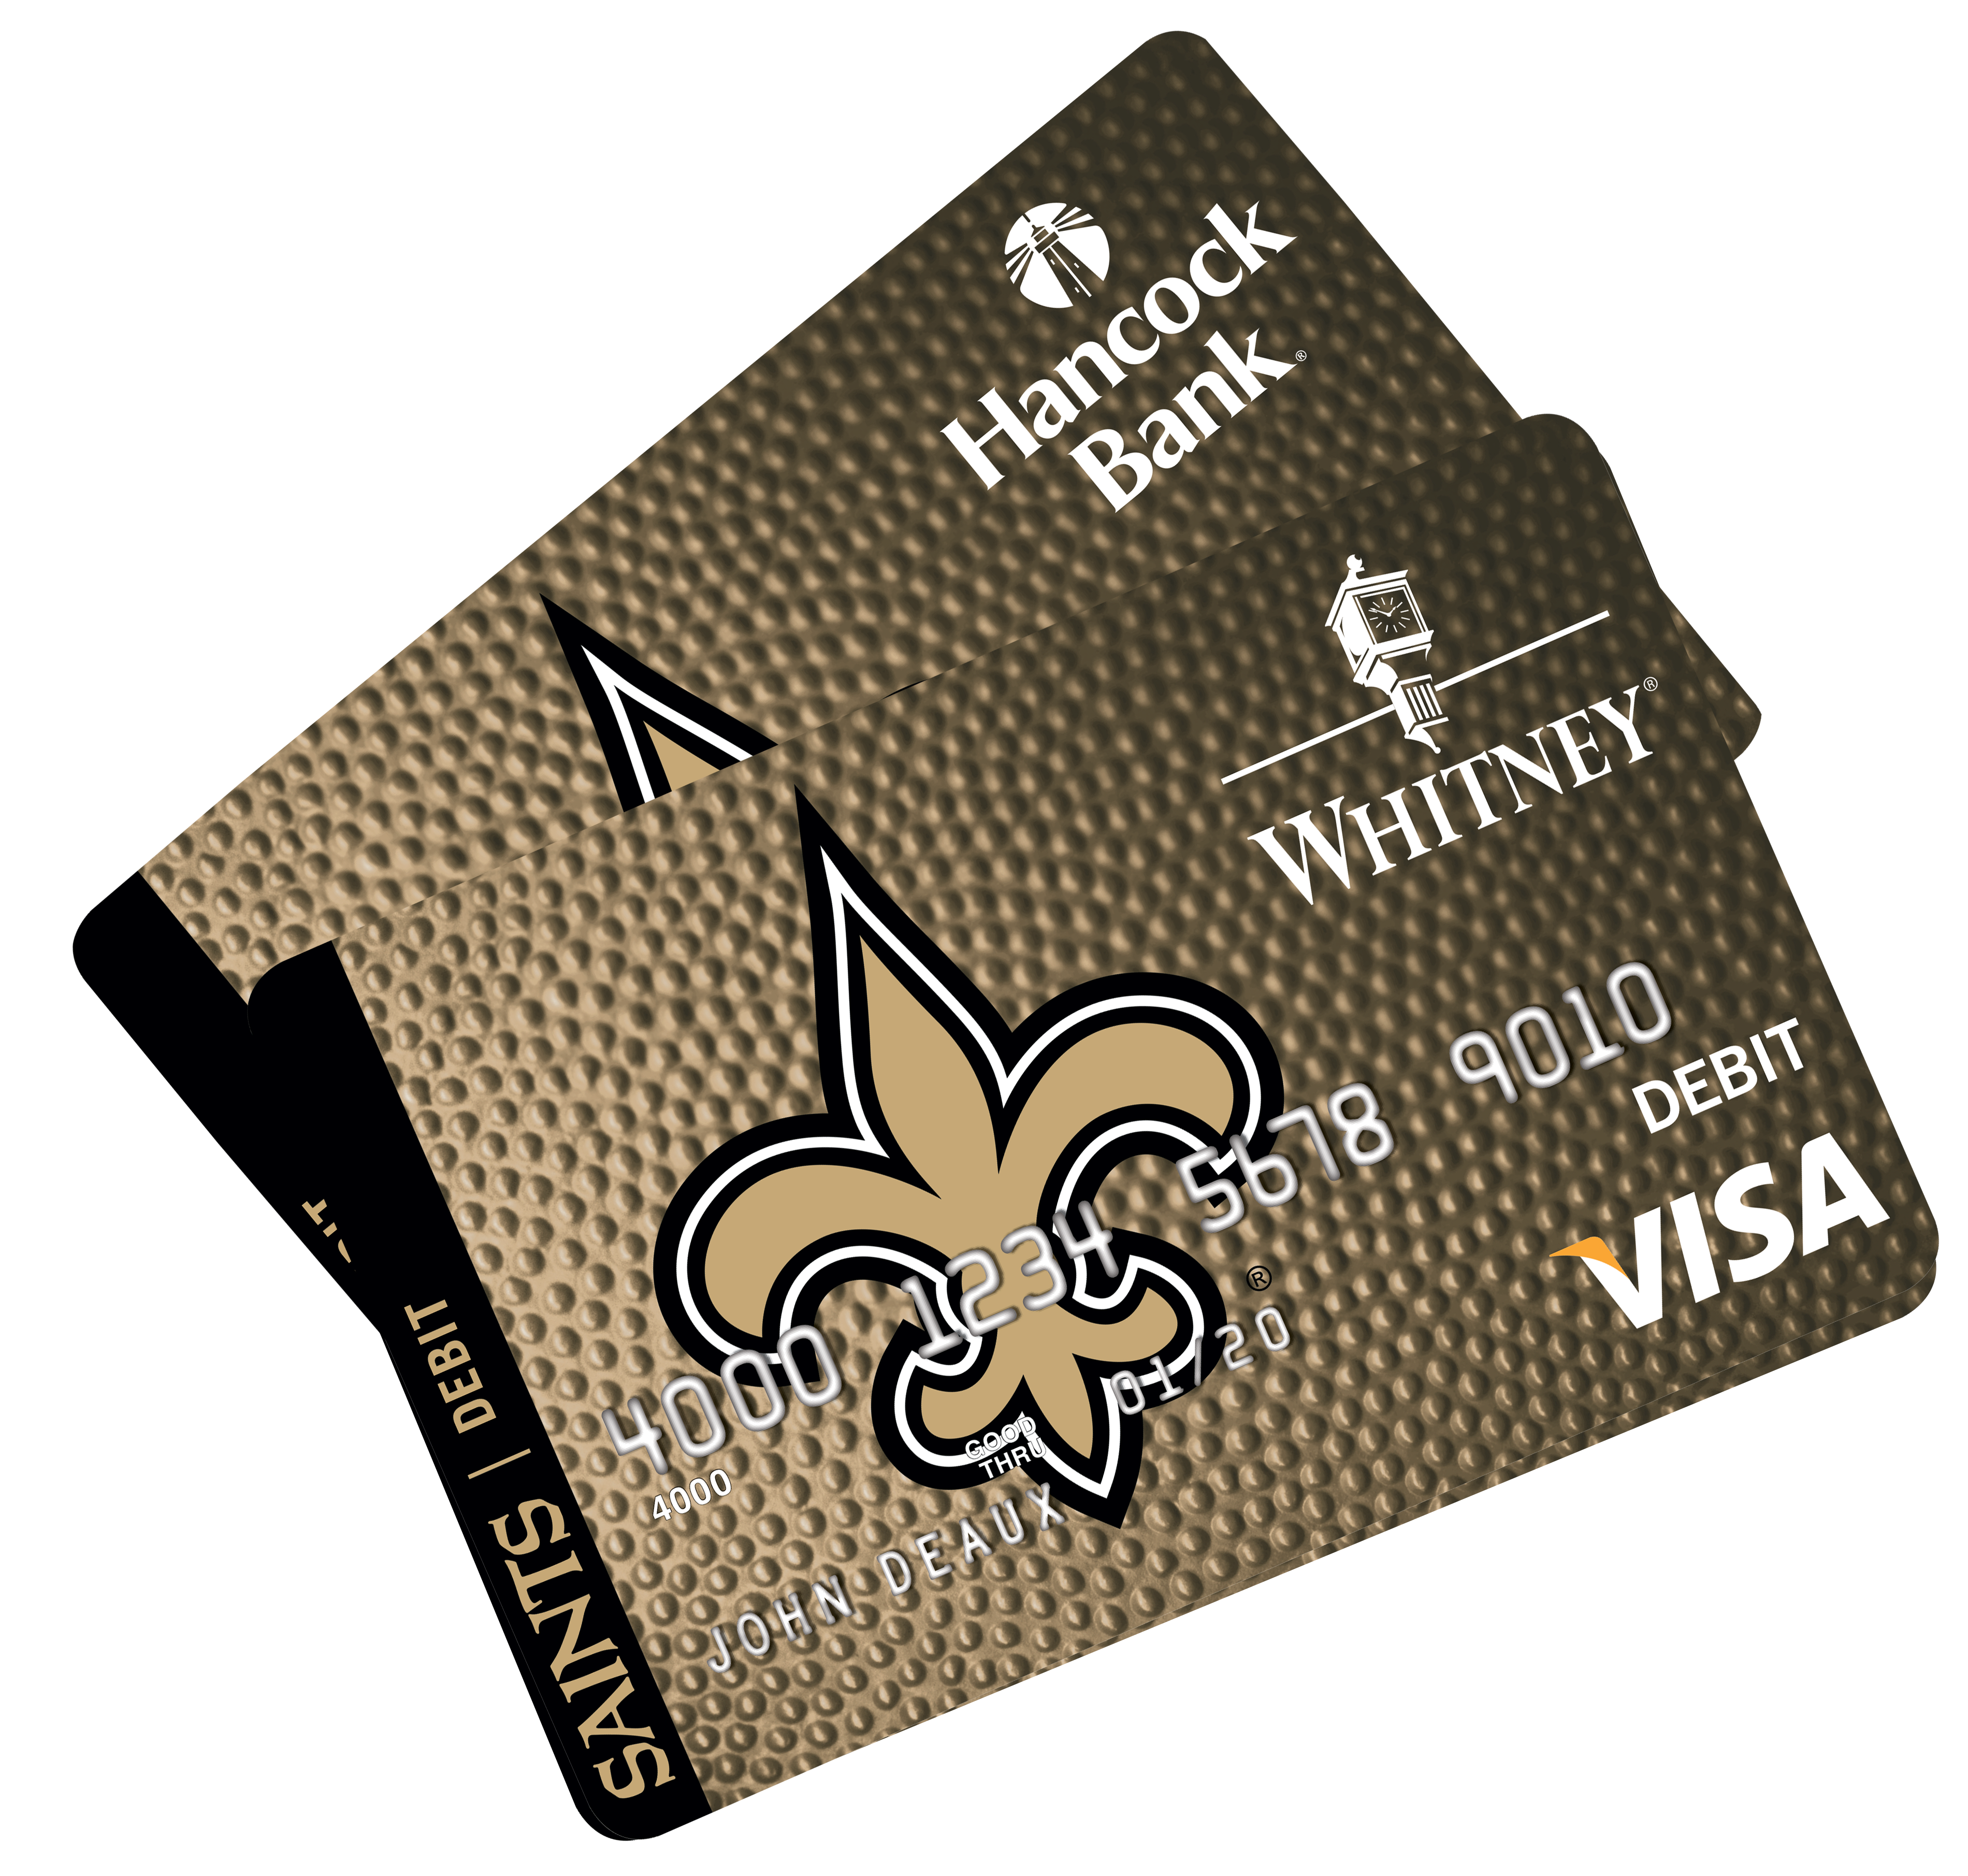 Saints_Debit_HB-WB.png